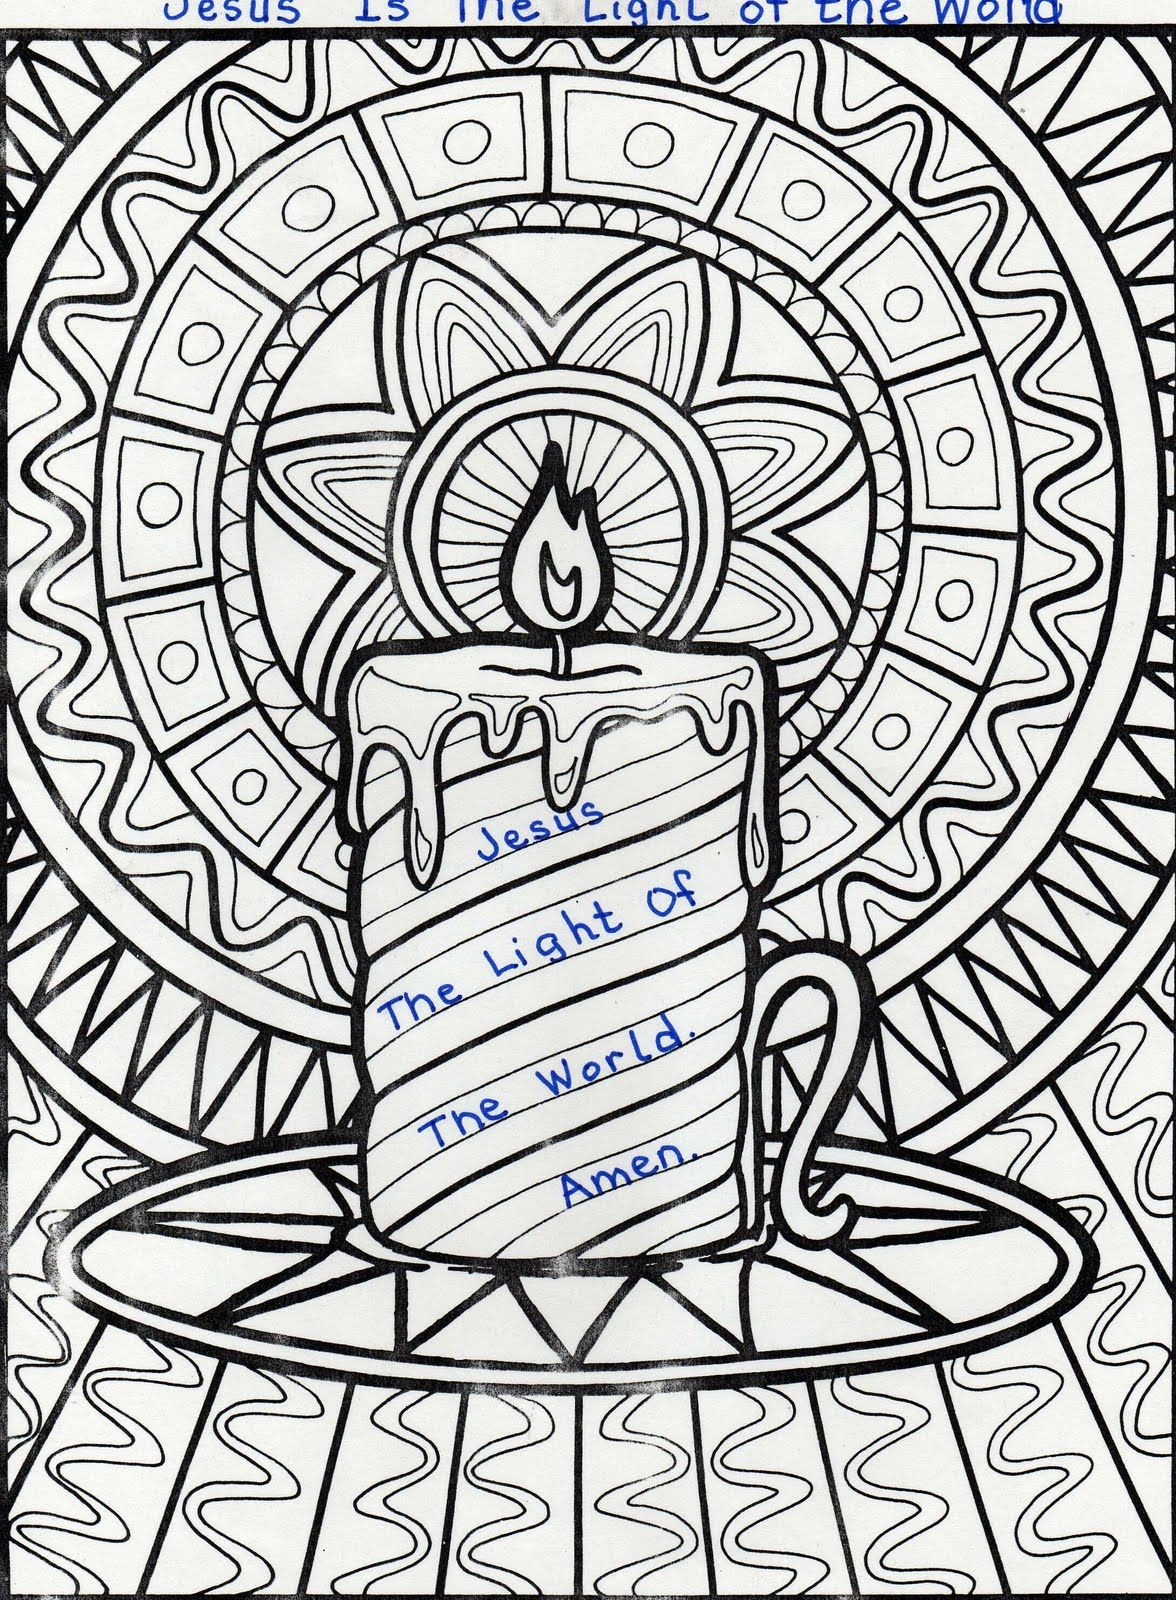 Elementary School Enrichment Activities Jesus Is The Light Coloring Page Christmas Coloring Pages Coloring Pages Doodle Coloring